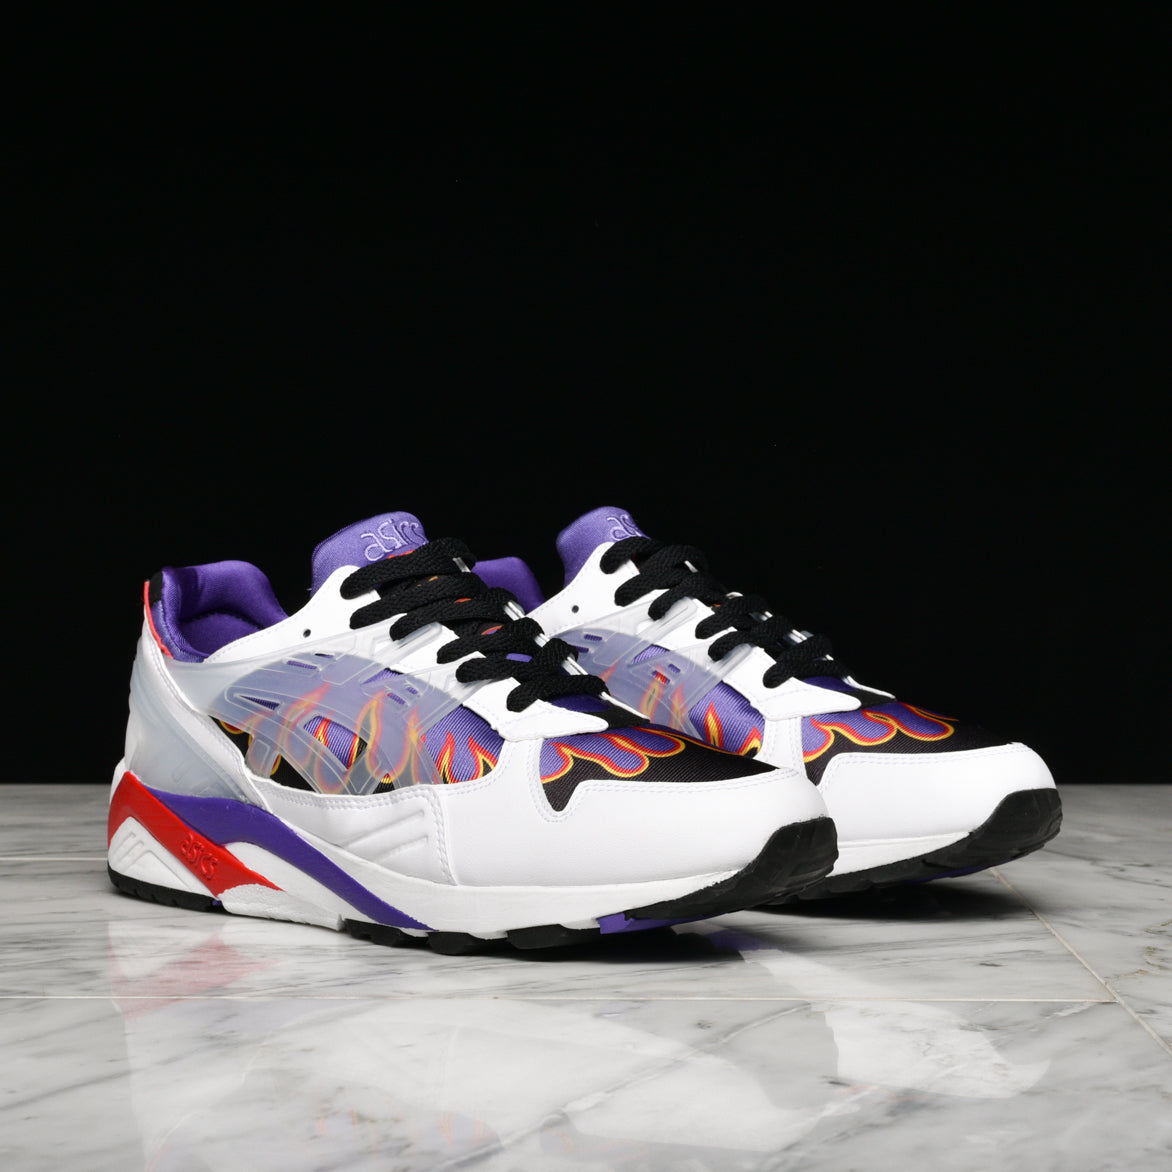 "SNEAKERWOLF X ASICS GEL-KAYANO TRAINER ""ANARCHY IN THE EDO PERIOD"""